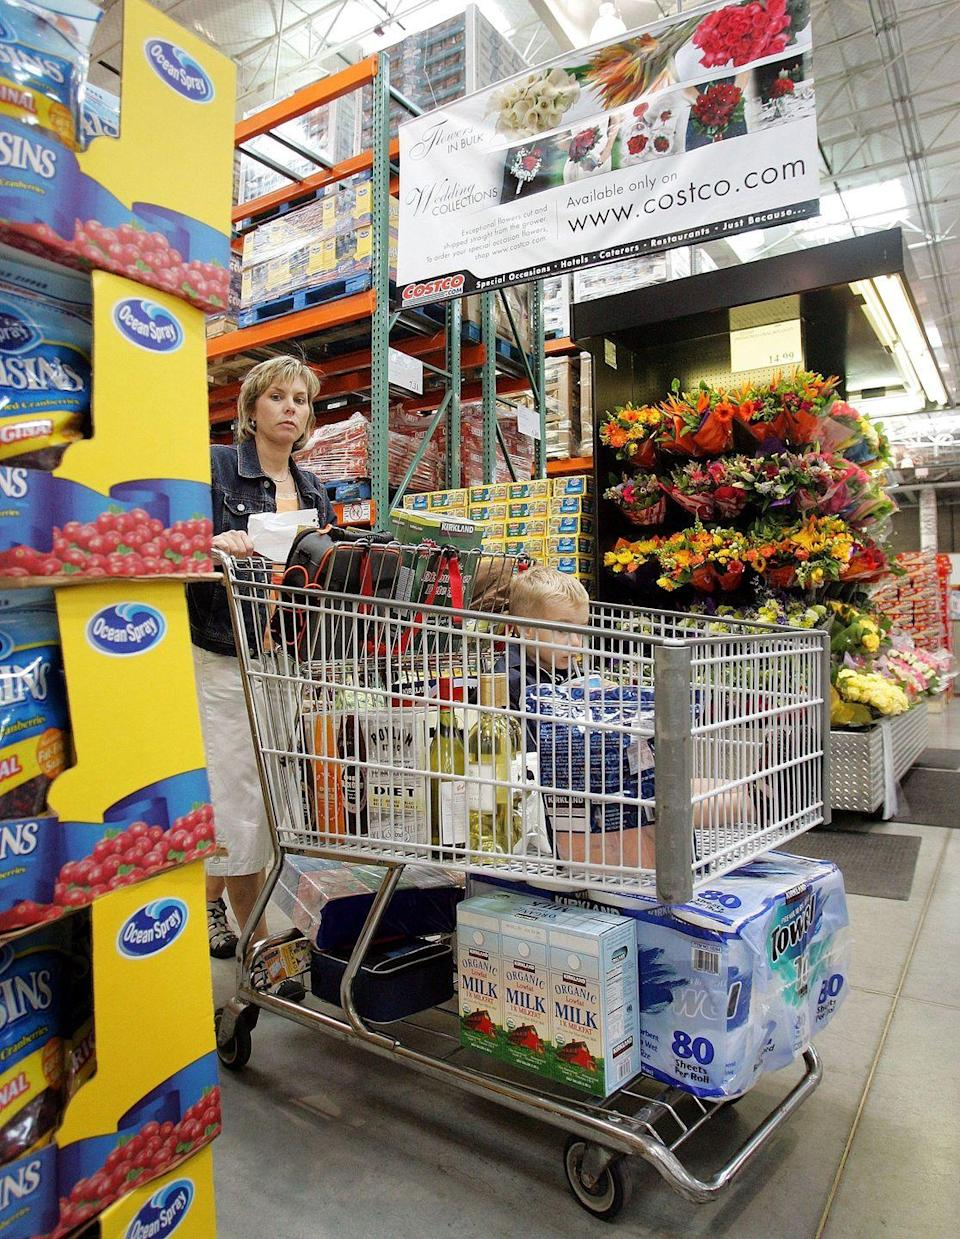 """<p>Whether the bouquet is for you or to perk up a party, take a swing by the floral department to see what's in store. The warehouse store delivers big bargains on bulk <a href=""""https://www.costco.com/floral.html"""" rel=""""nofollow noopener"""" target=""""_blank"""" data-ylk=""""slk:flowers, arrangements and centerpieces"""" class=""""link rapid-noclick-resp"""">flowers, arrangements and centerpieces</a>.</p>"""